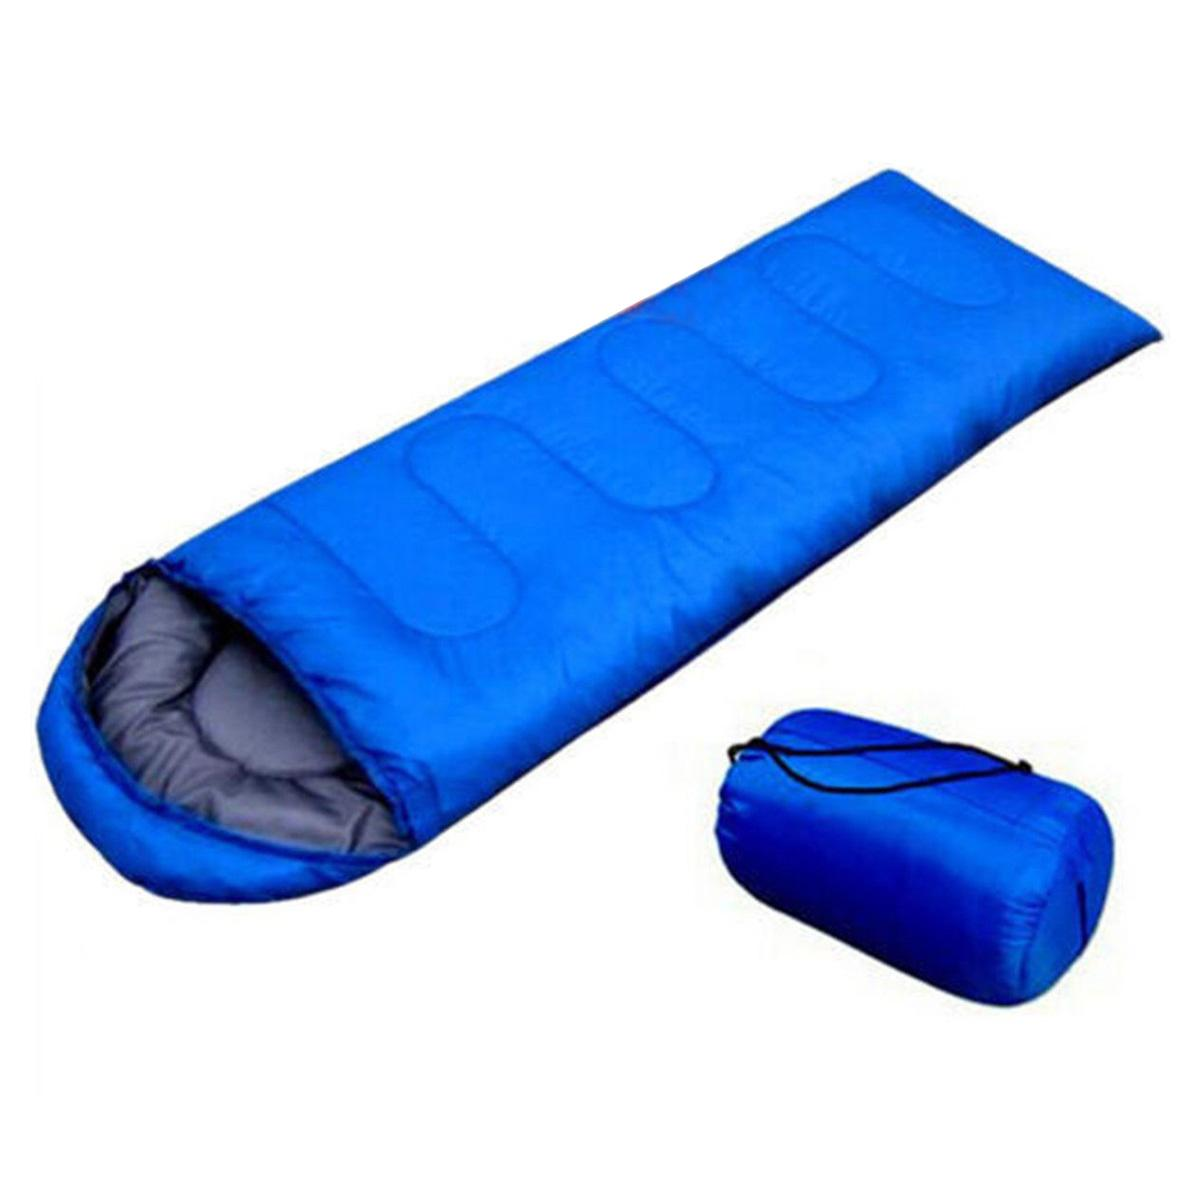 3 Season Waterproof Adult Camping Hiking Suit Case Envelope Sleeping Bag Warm UK